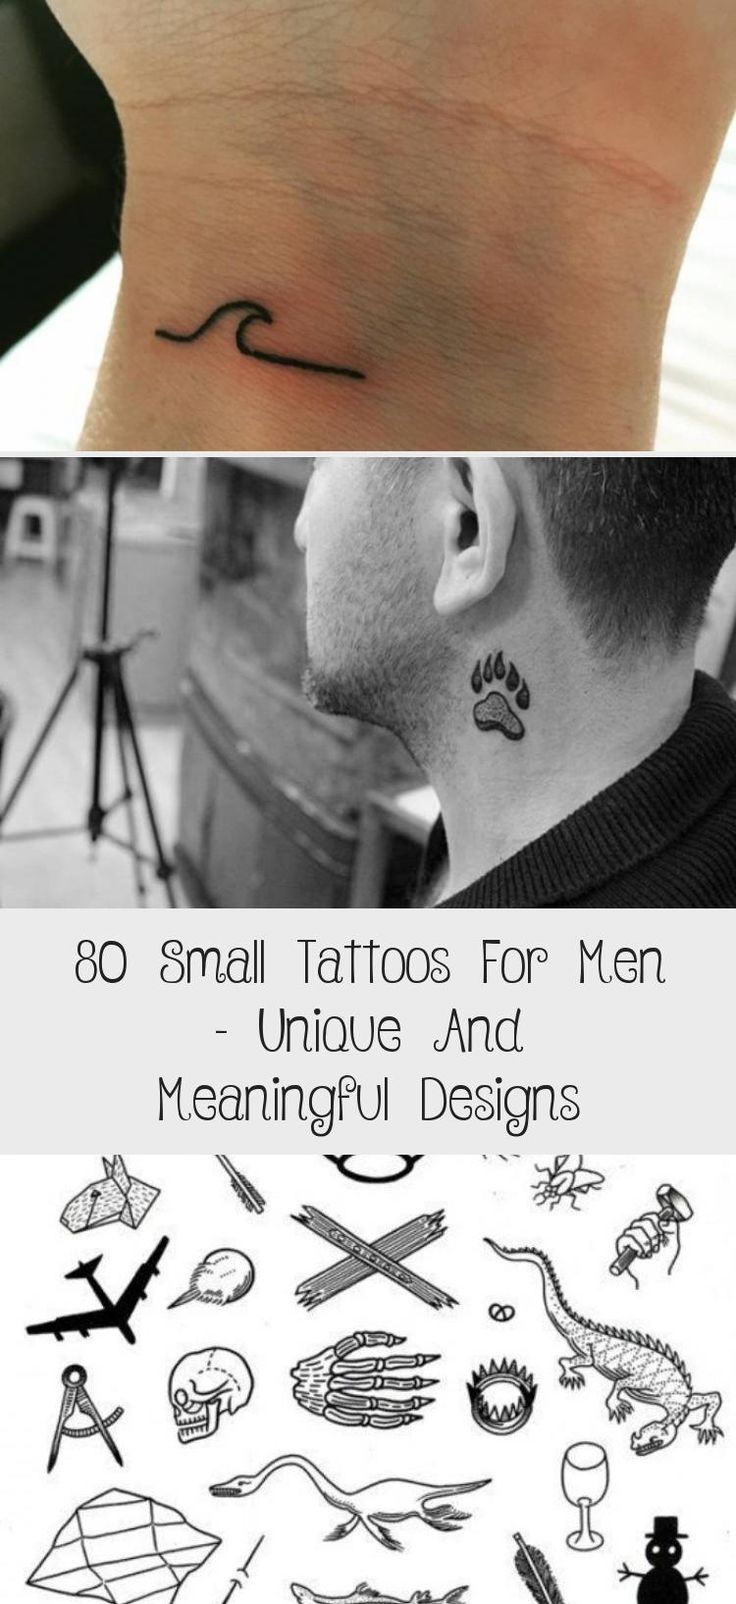 80 Small Tattoos For Men – Unique And Meaningful Designs